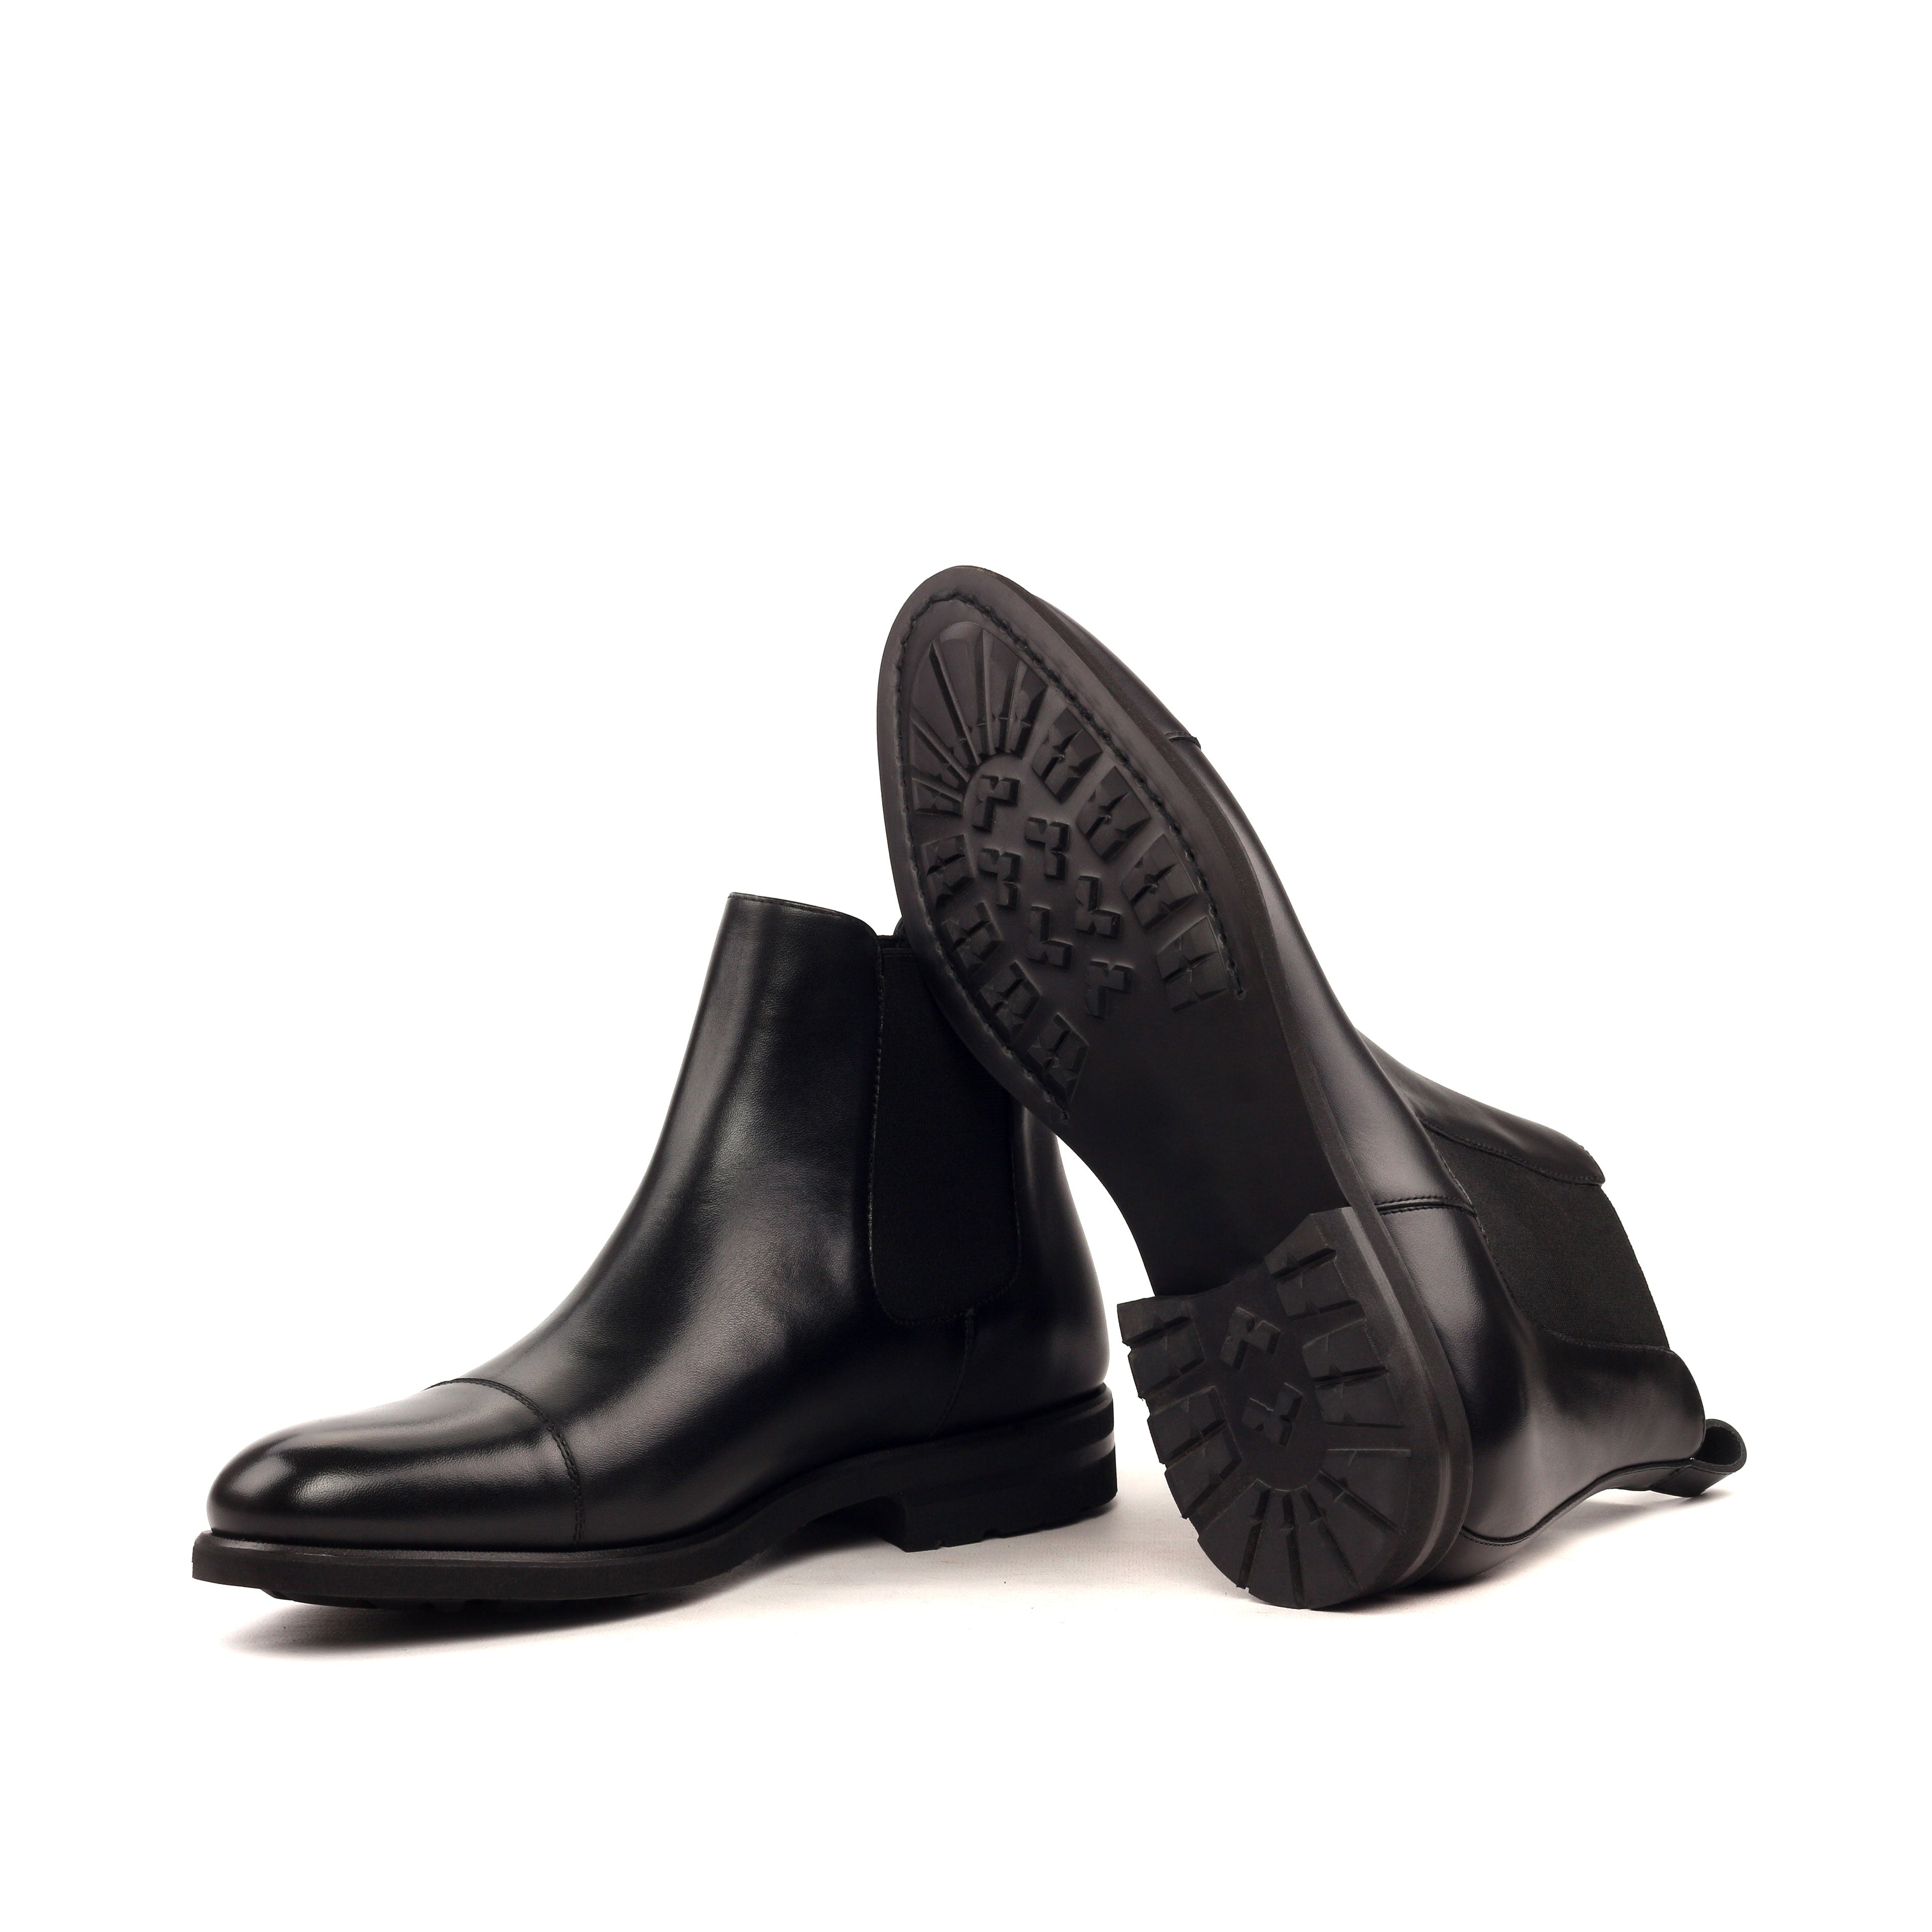 Custom Designed Box Calf Chelsea Boots - DV Clothiers - The Best Custom Mens Suits In Vancouver